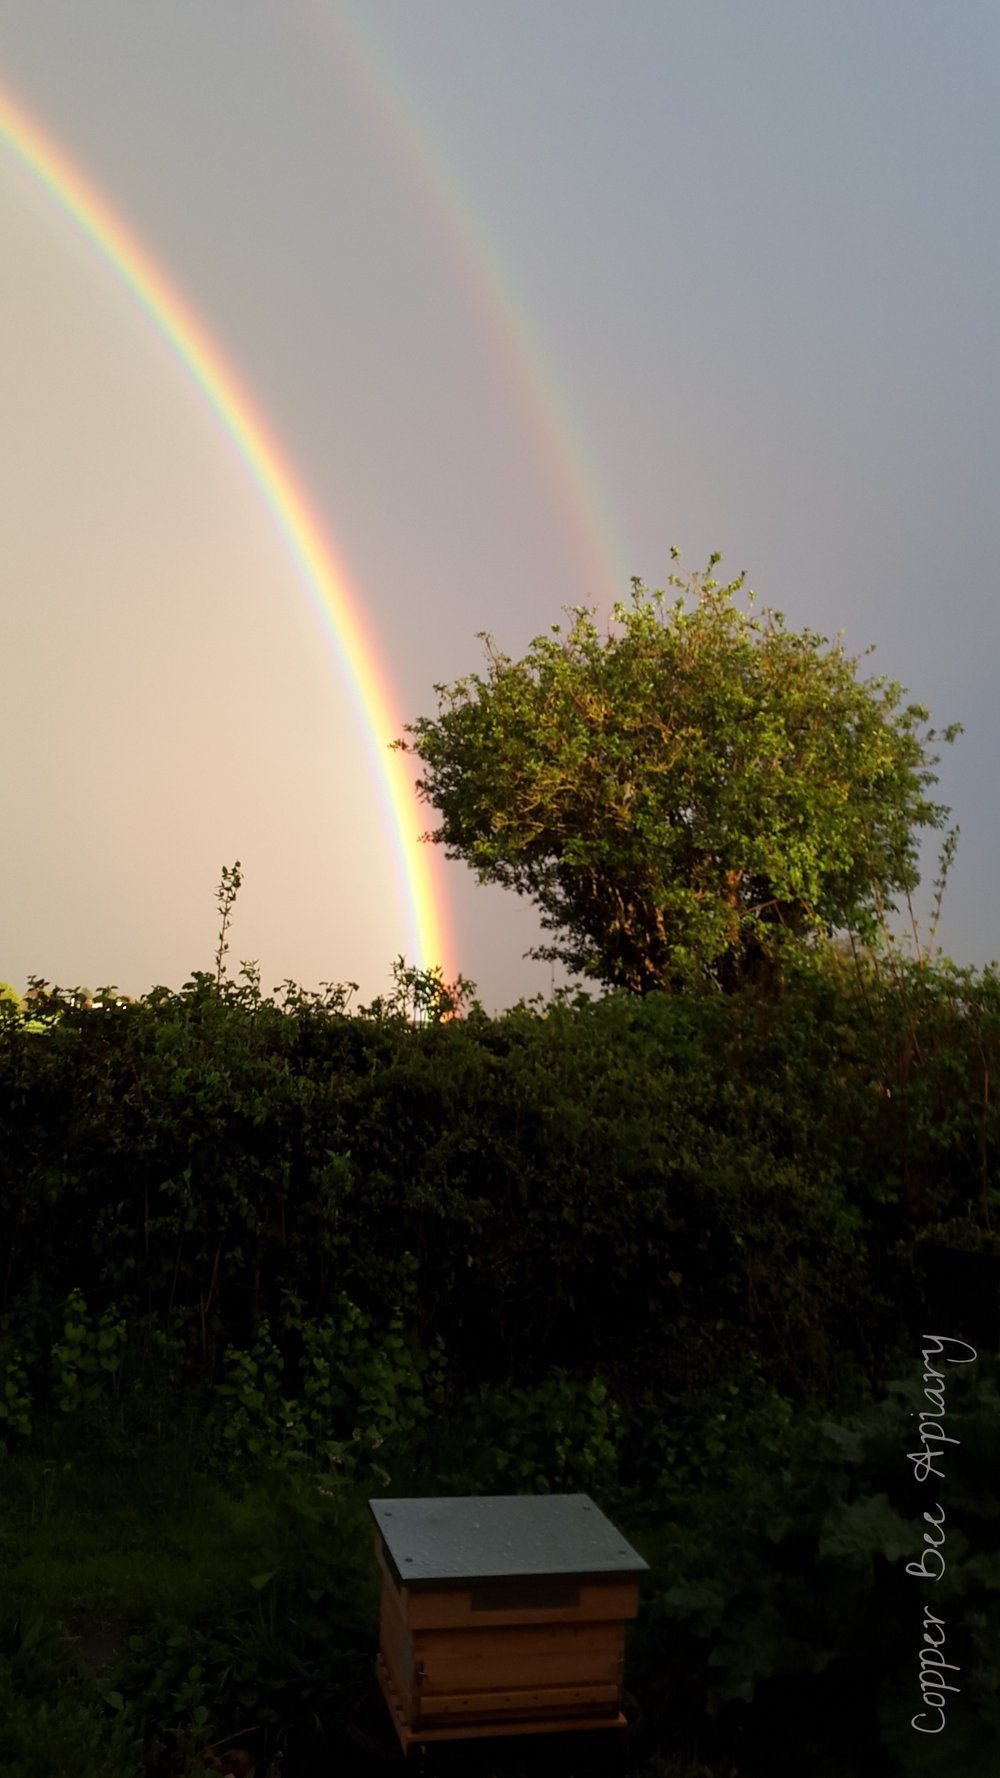 The beehive at the end of the rainbow